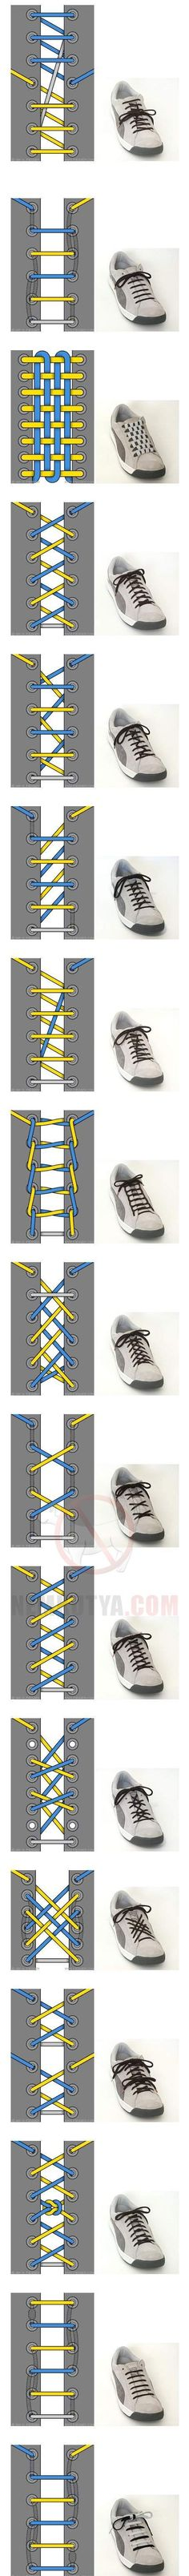 Shoe laces - who knew there were so many ways to tie them?!